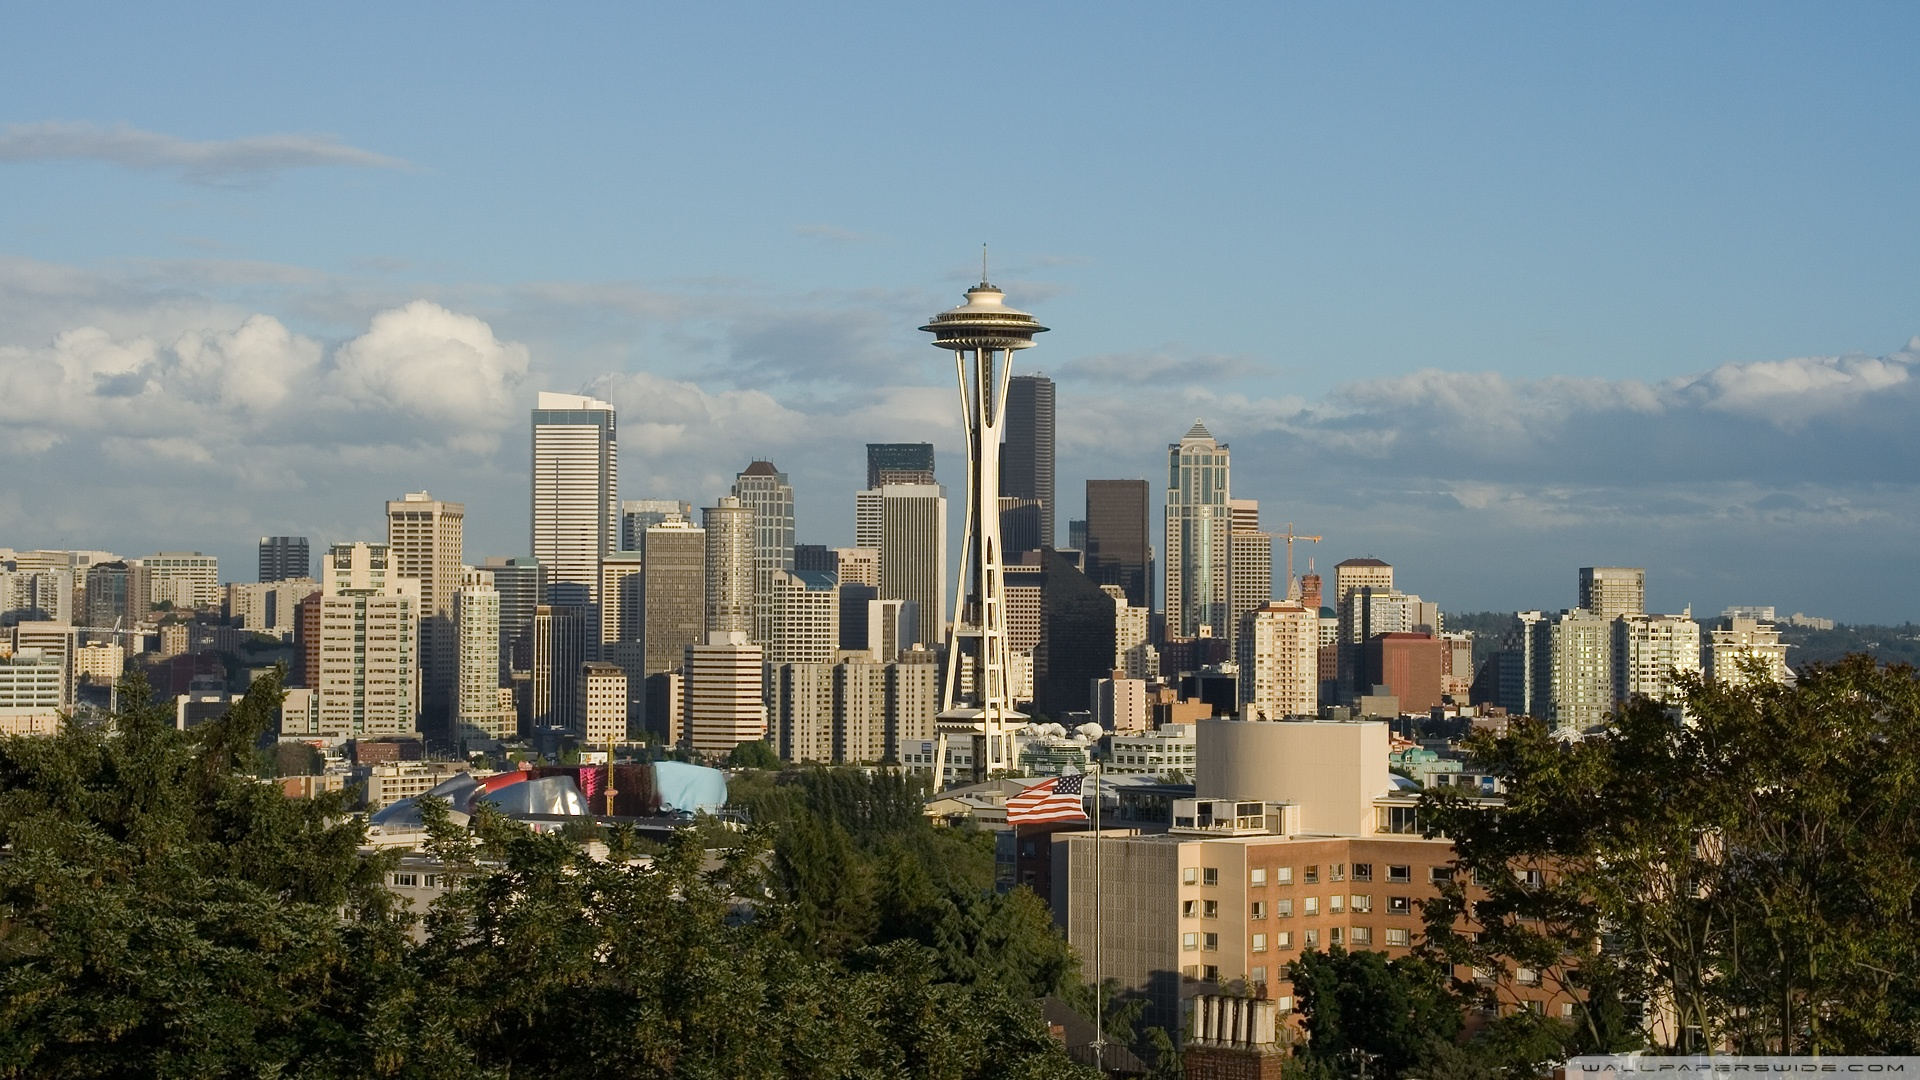 Seattle Hd Wallpaper Posted By Zoey Simpson